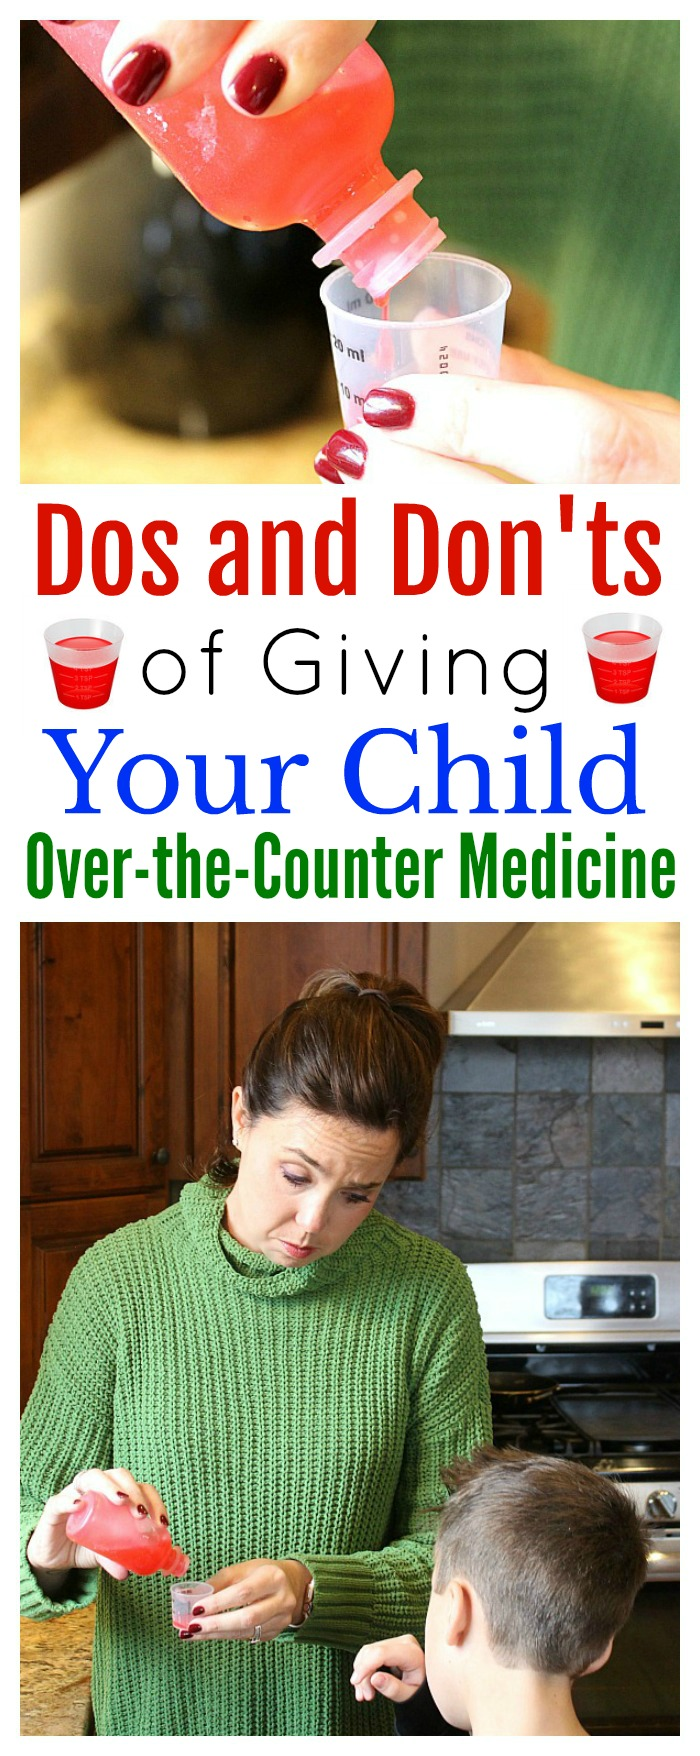 Dos and Don'ts of Giving Your Child Over-the-Counter Medicine